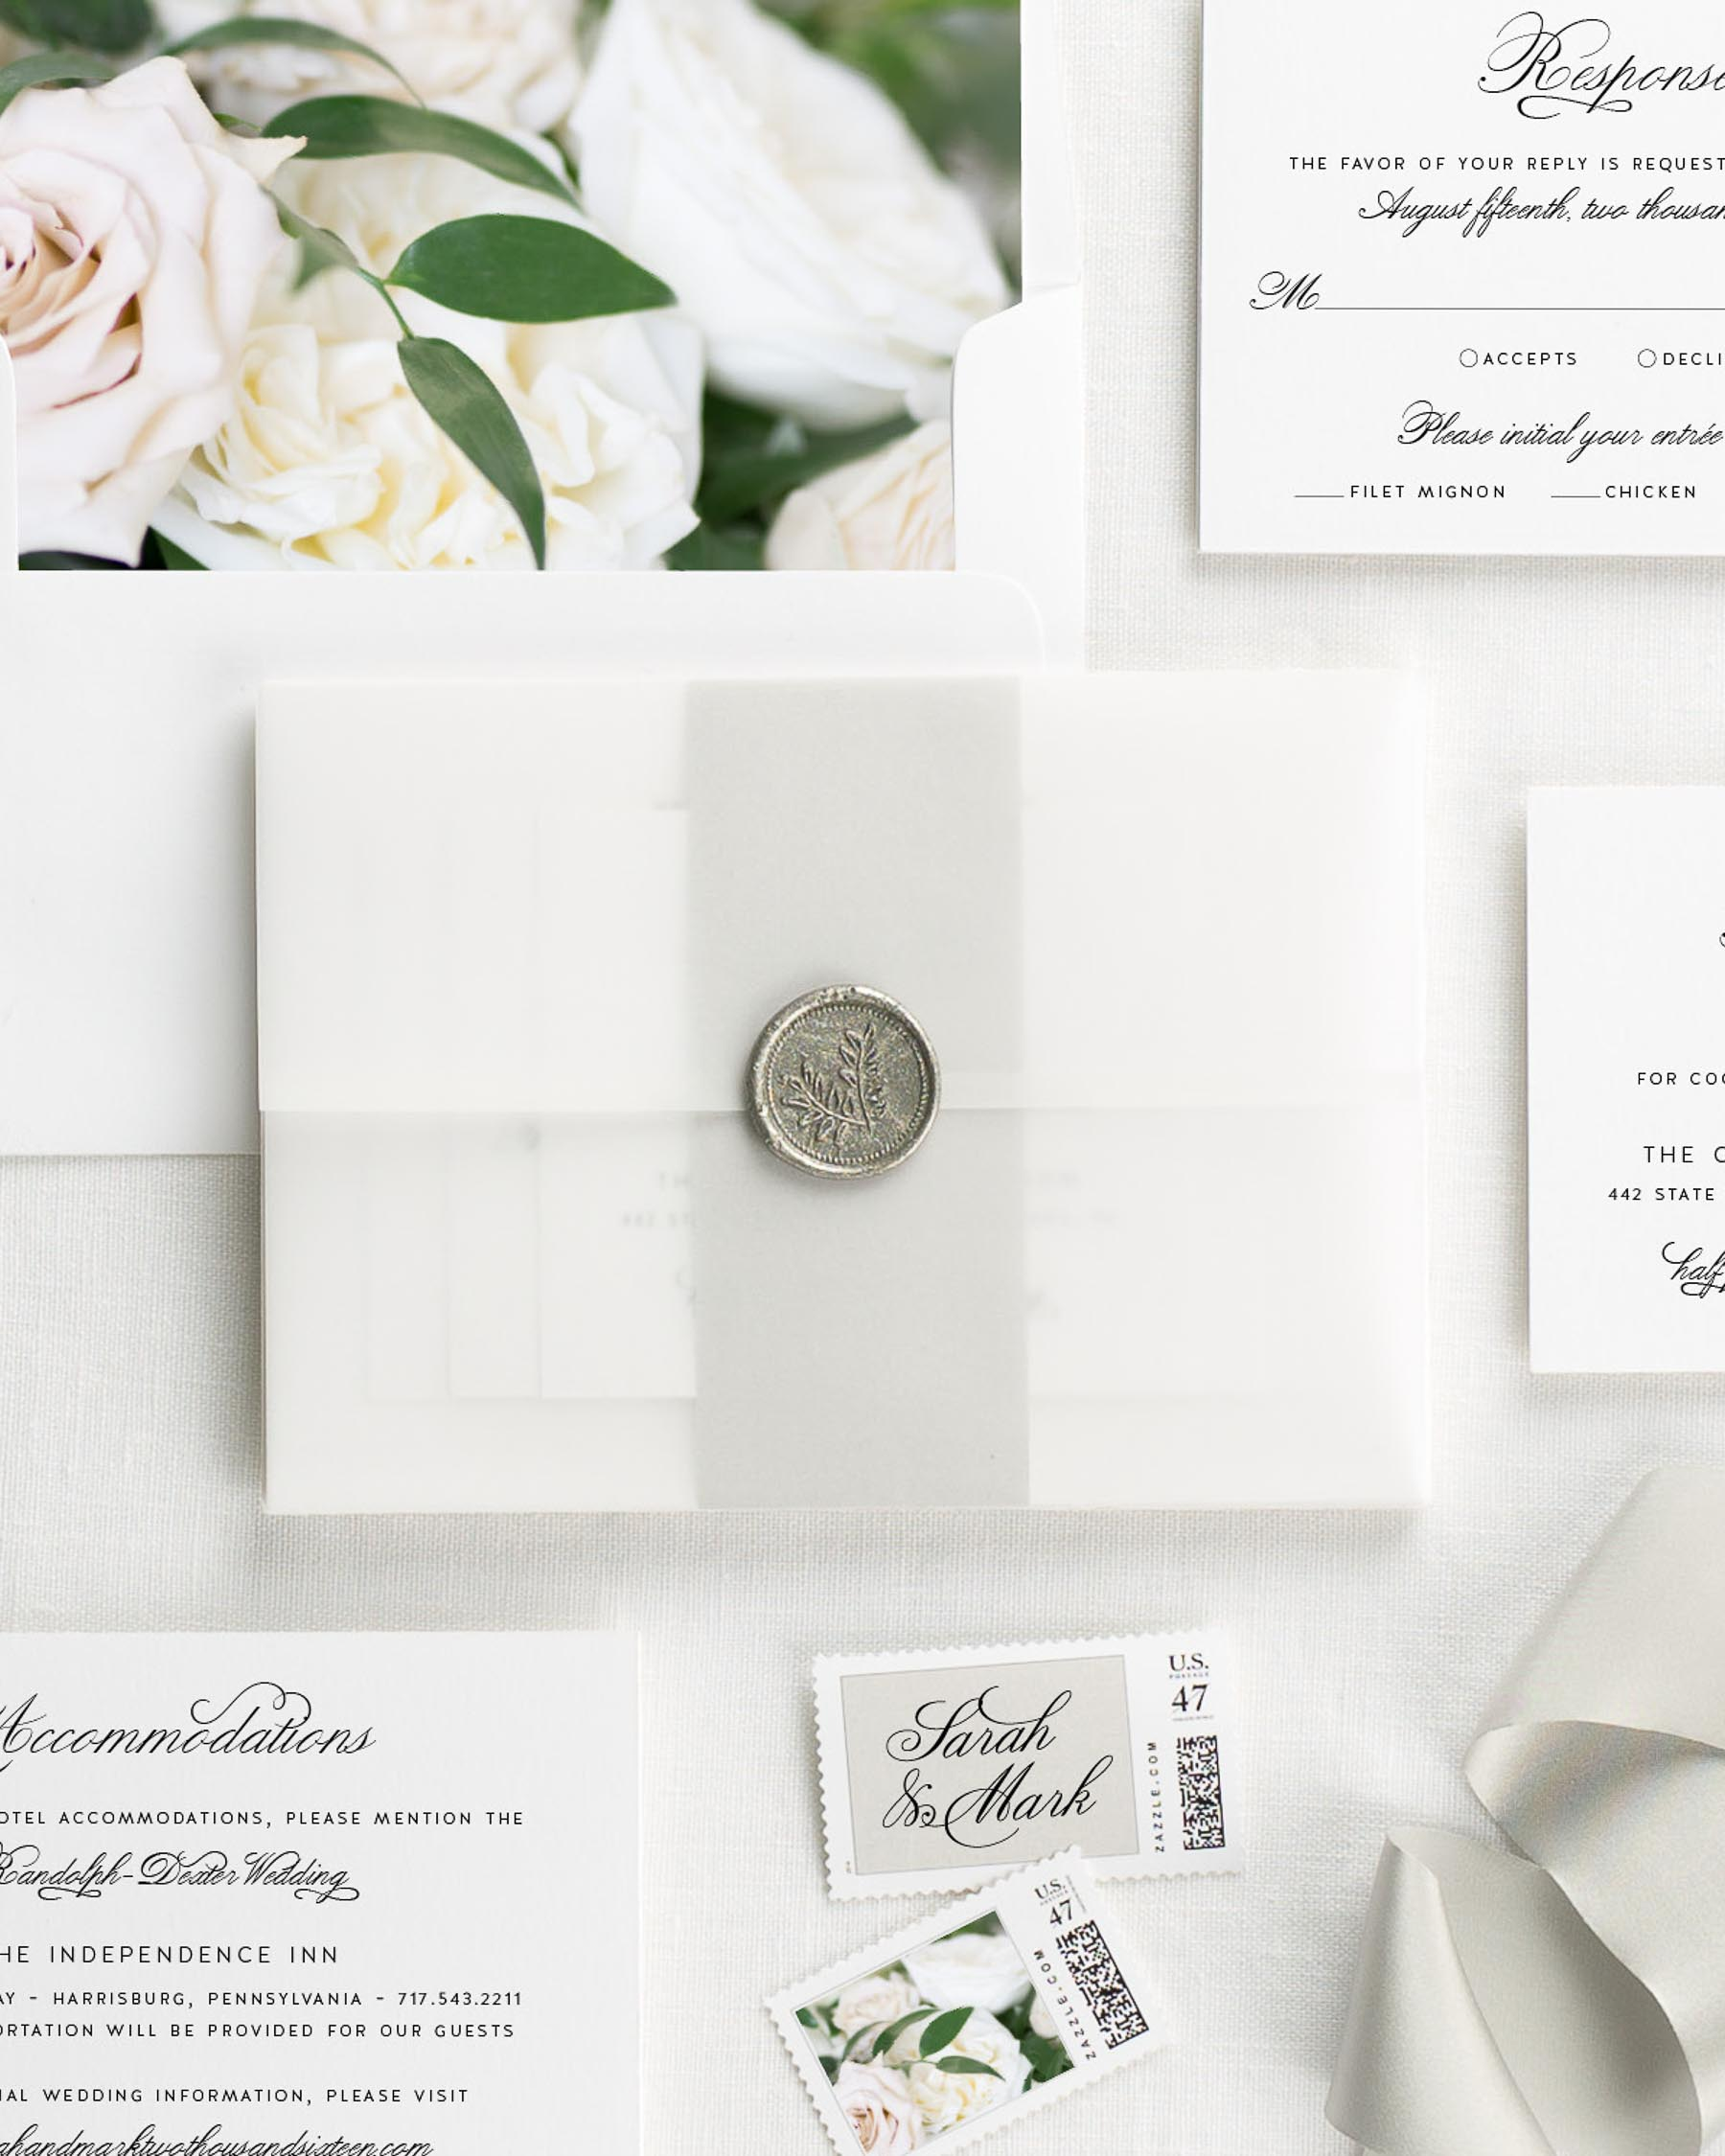 1940s Floral Wedding Invitations - Floral Wedding Invitations by Shine